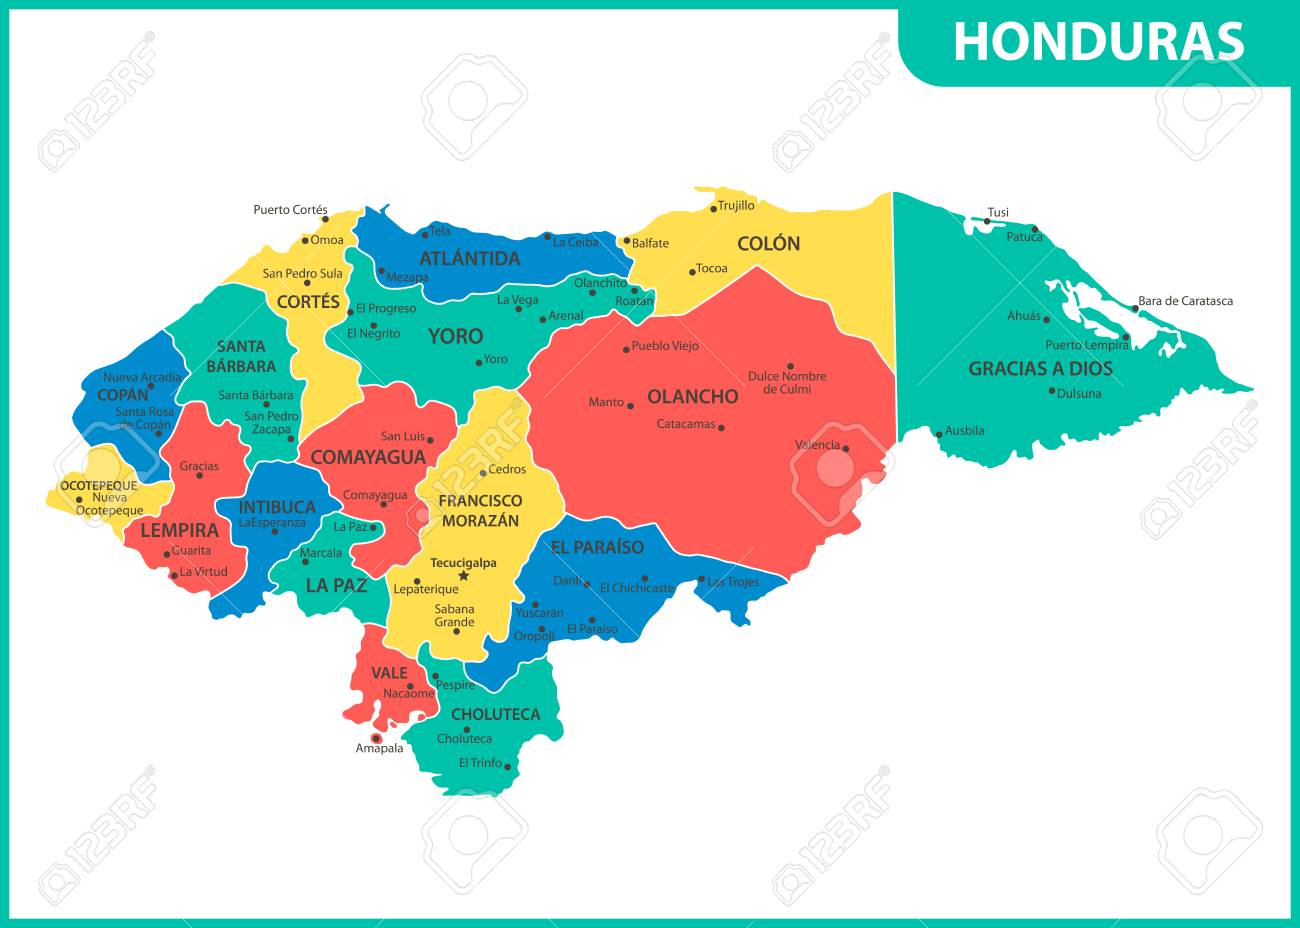 The detailed map of Honduras with regions or states and cities,.. on map of san bernardino county cities, map of oceania cities, map of eastern united states cities, map of s korea cities, map of kosovo cities, map of luxembourg cities, map of rio grande cities, map of palau cities, map of guyana cities, map of ohio showing cities, map of the dominican republic cities, map of western tennessee cities, map of laos cities, map of niger cities, map of mississippi river cities, map of democratic republic of congo cities, map equatorial guinea cities, map of guam cities, map of gulf of california cities, map of burundi cities,